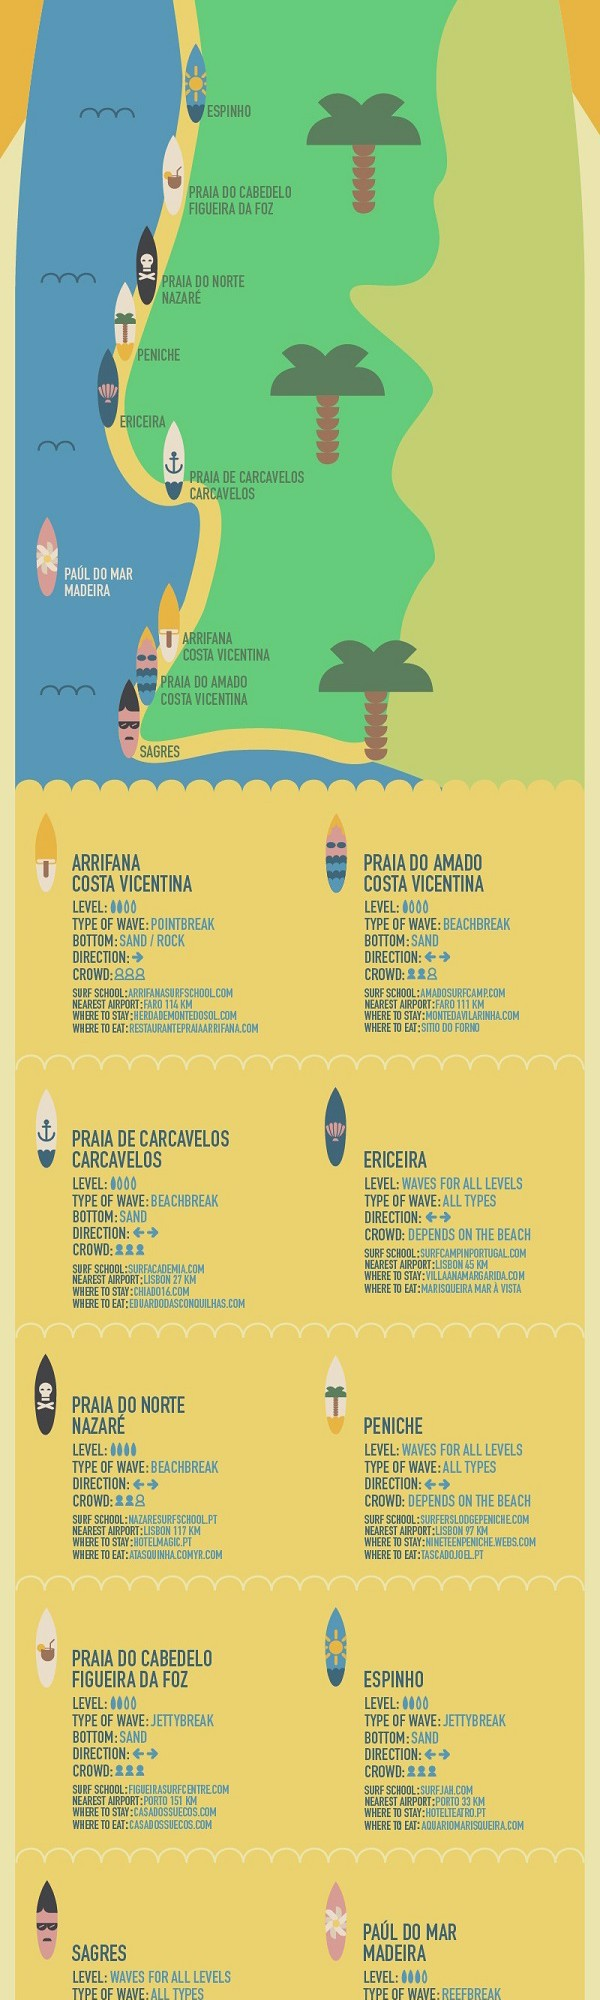 surfen-in-portugal-infographic